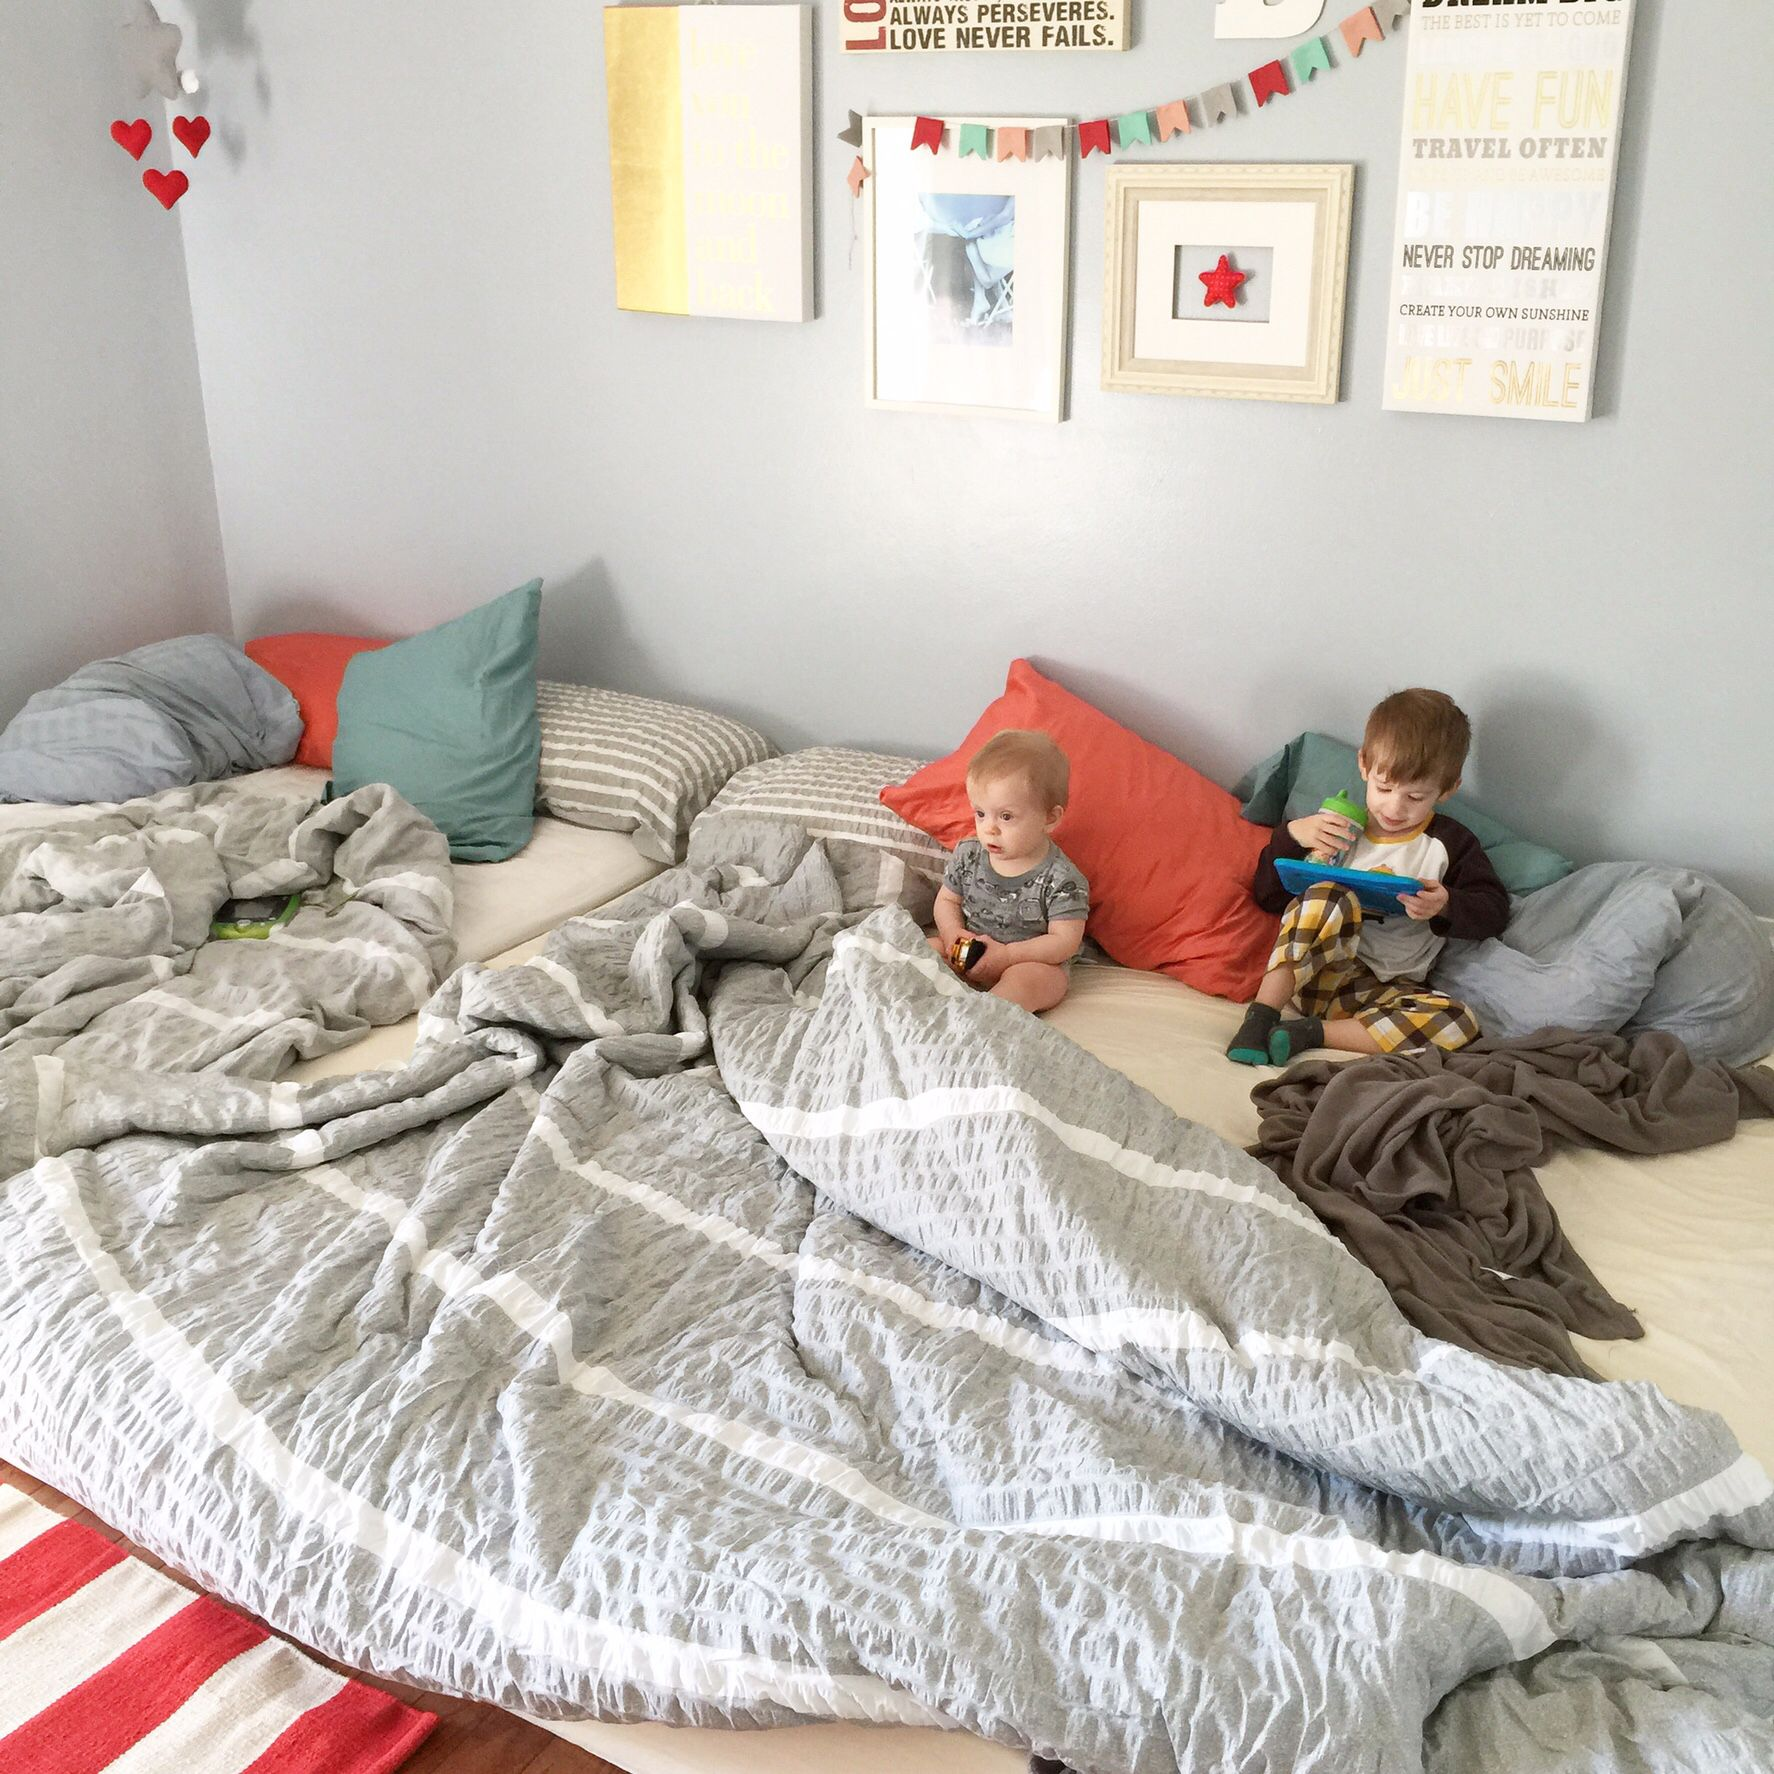 On Floor Beds Family Bed Bed Sharing Co Sleeping Co Sleeper Family